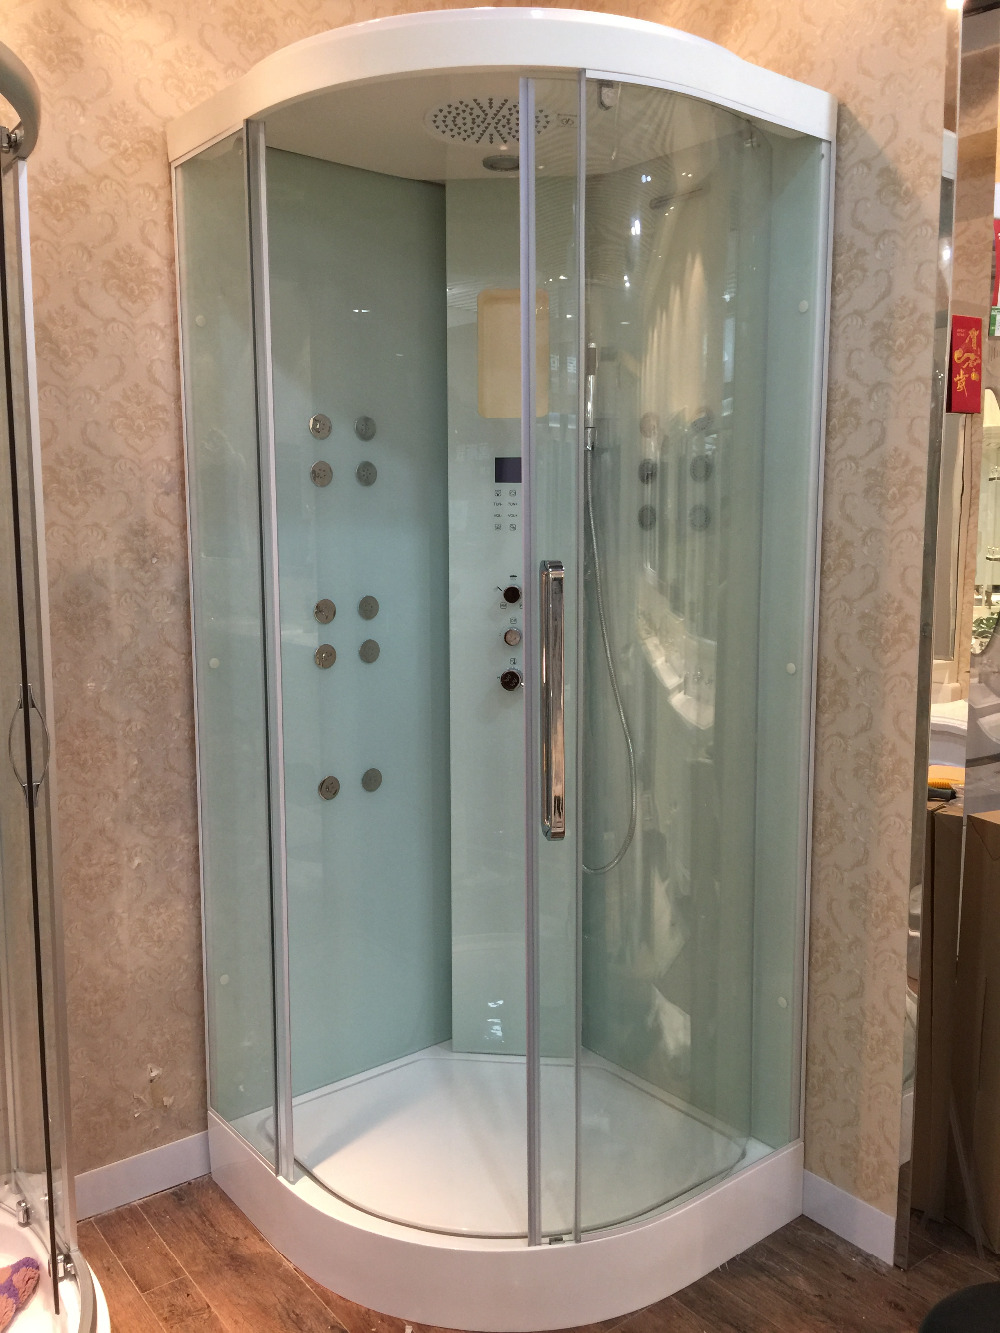 Sauna Rooms Spa Tubs & Sauna Rooms Amicable 900*900*2200mm Luxury Steam Shower Enclosure Bathroom Wet Steam Sauna Cabin Jetted Massage Thermostatic Faucet8055 A Great Variety Of Goods